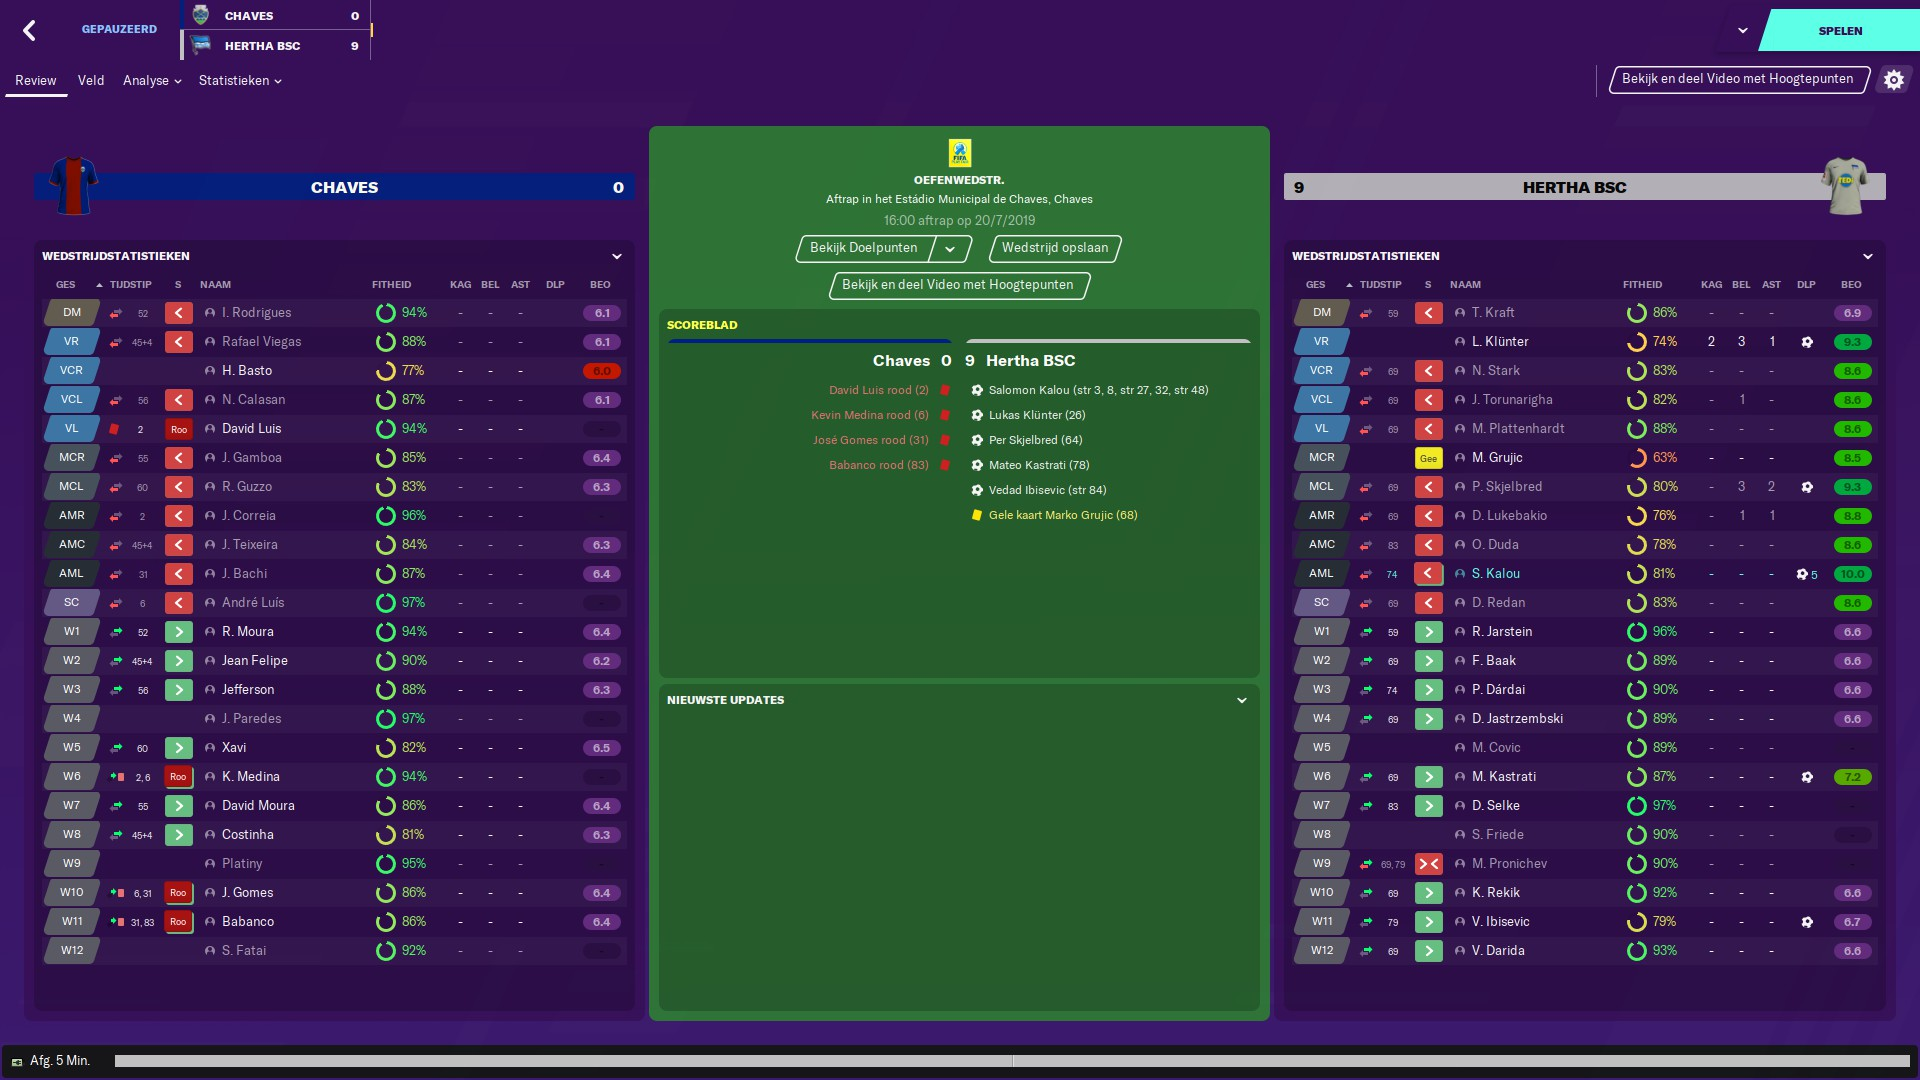 Football Manager 2020 match